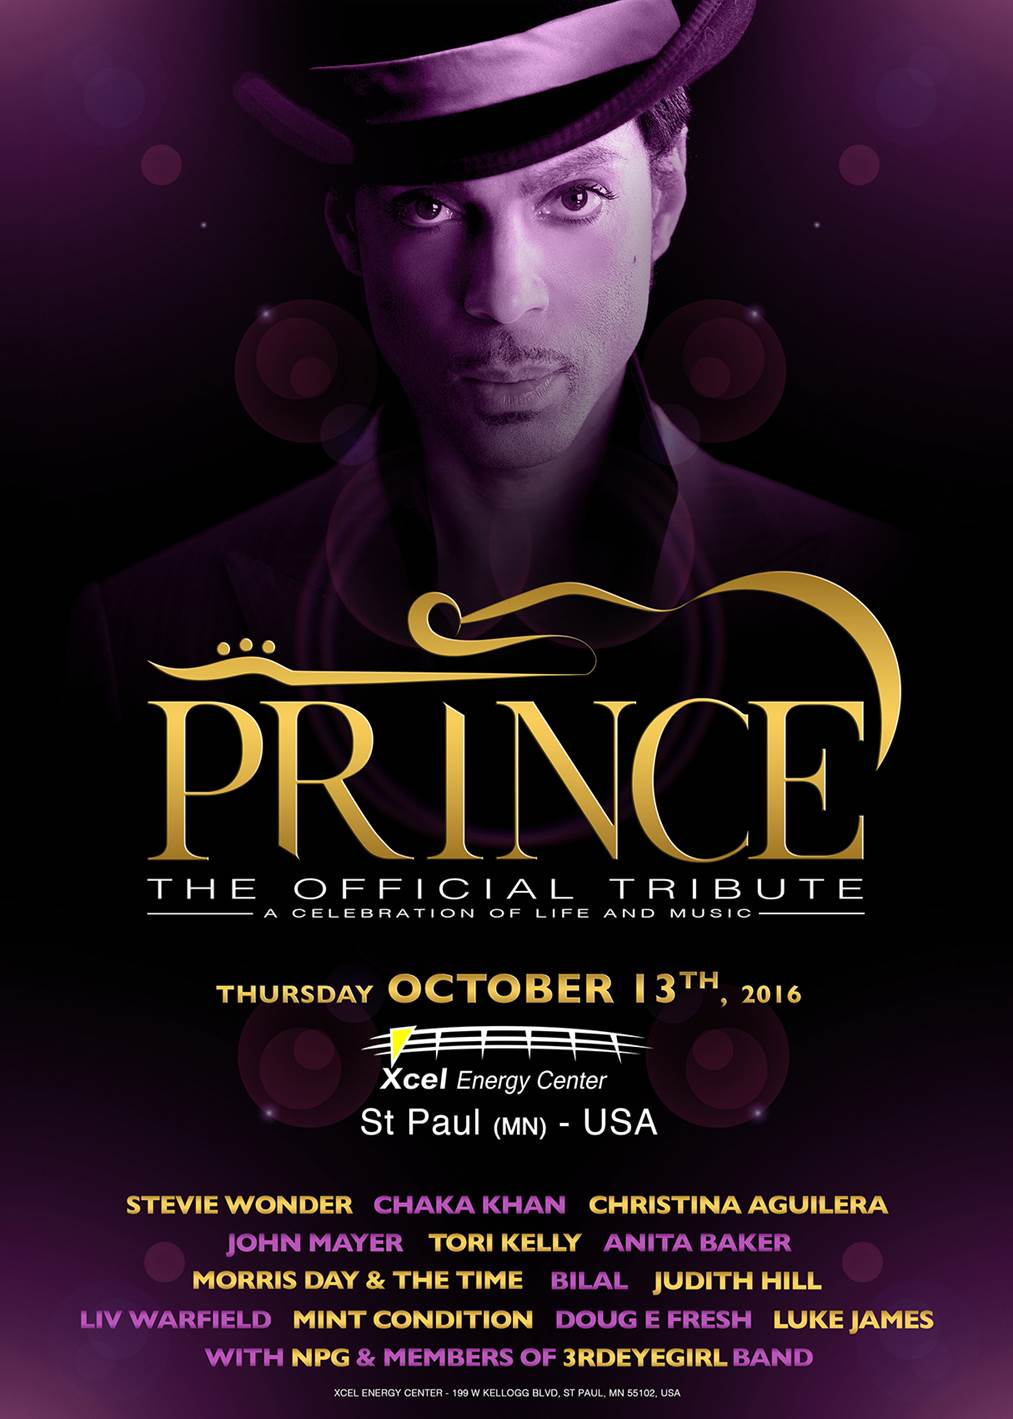 Official Prince Tribute Concert: details announced